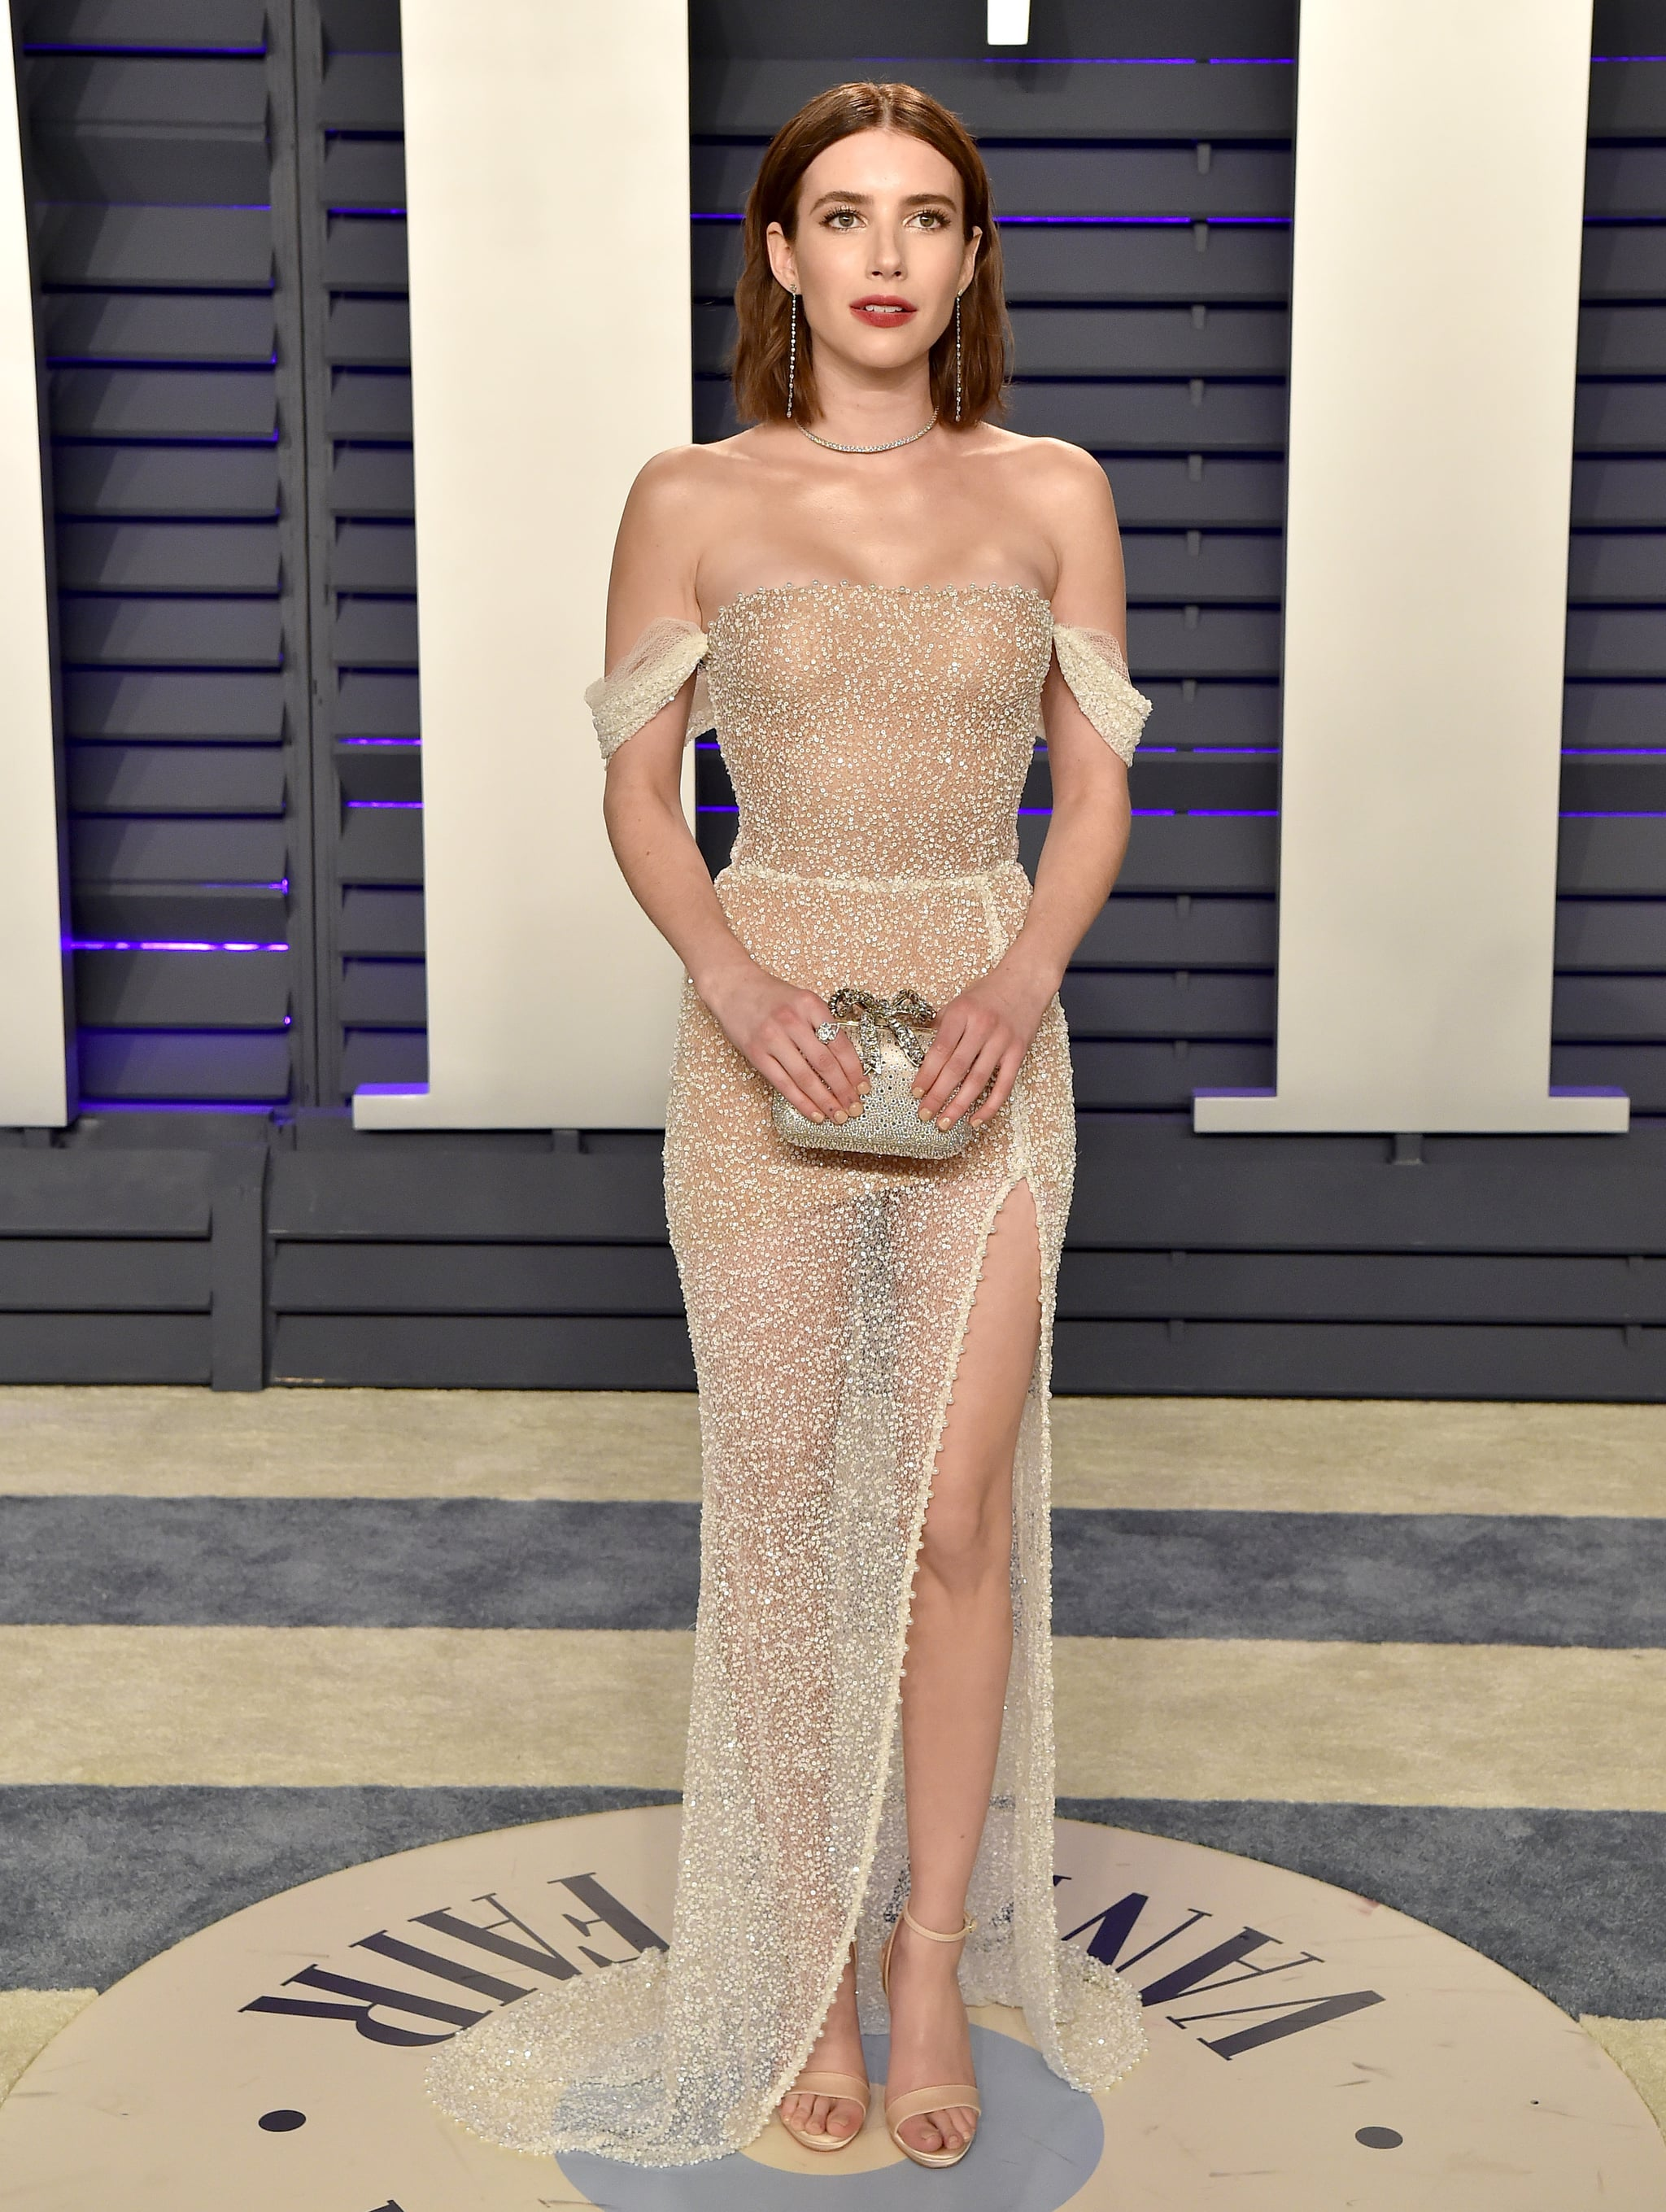 Emma Roberts At The 2019 Vanity Fair Oscars Party The Afterparty Beauty Looks Were So Good We Think They Deserve Oscars Too Popsugar Beauty Photo 7